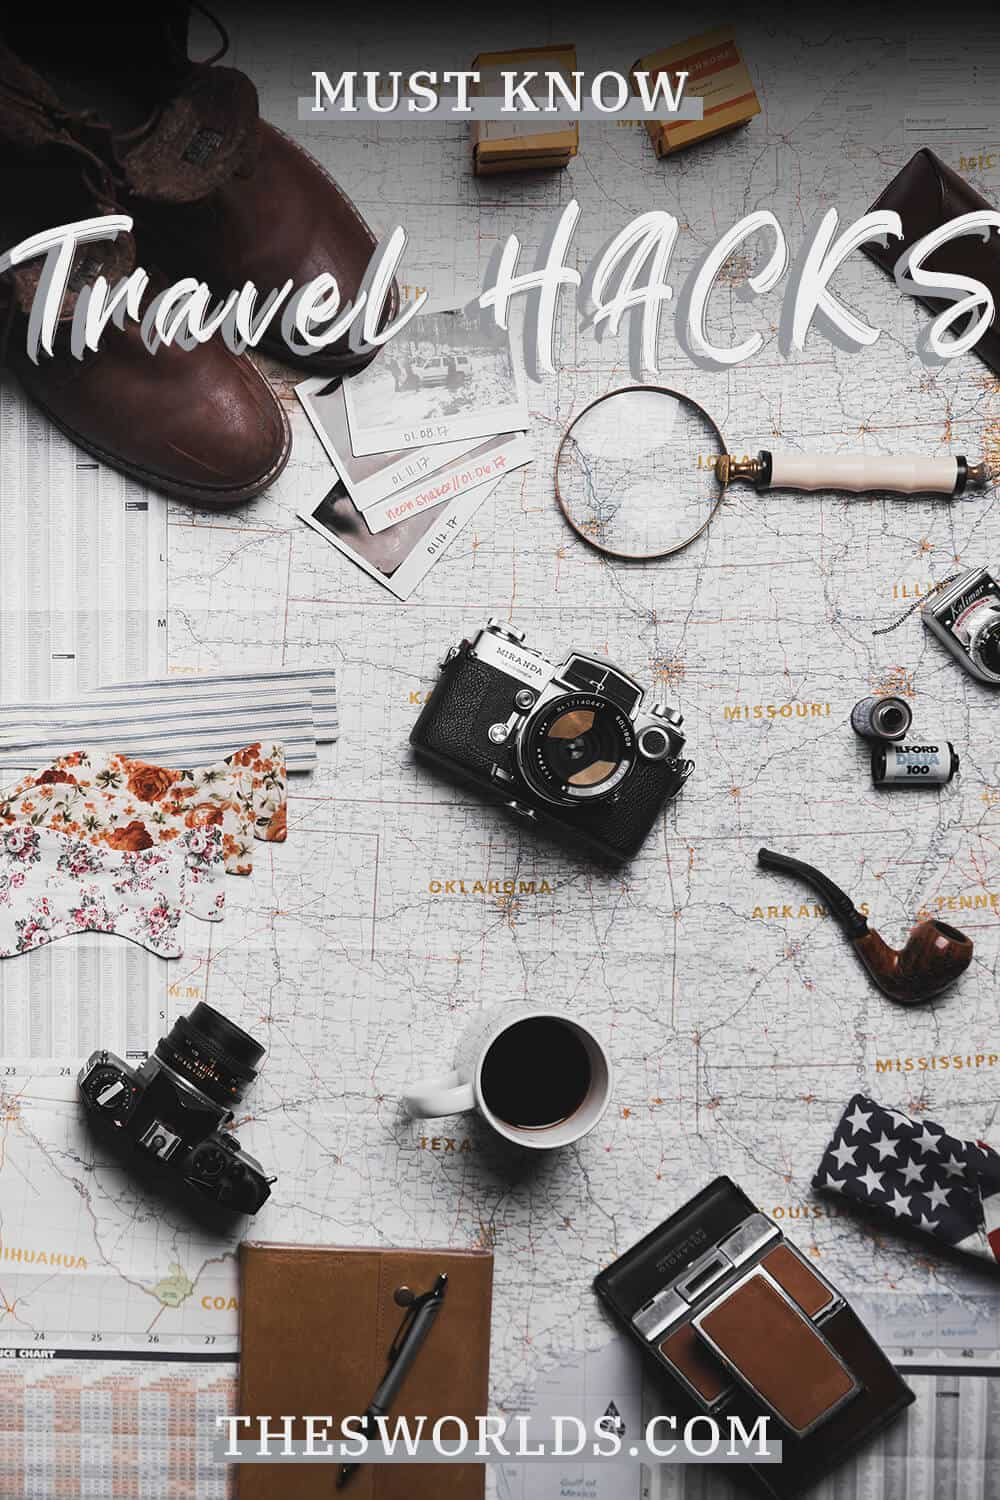 Must know travel hacks